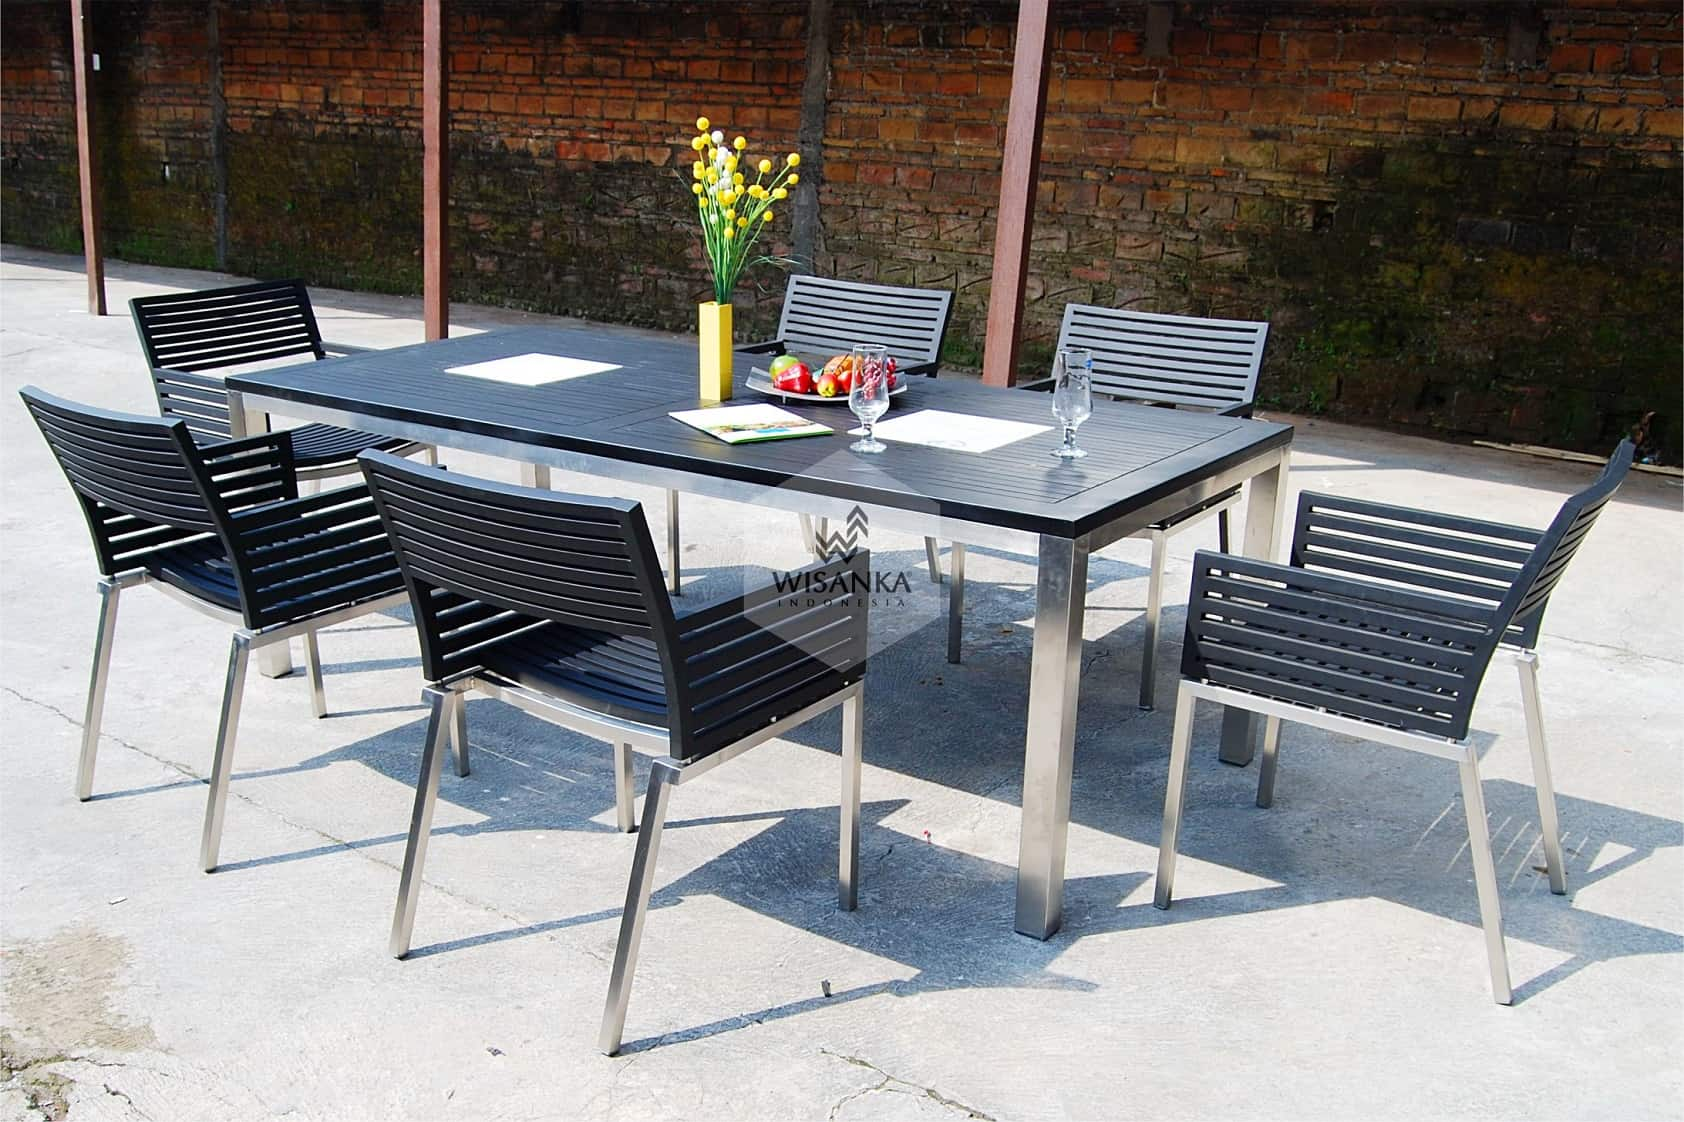 Chromed legs and plastic top for black table and chair group for patio zone